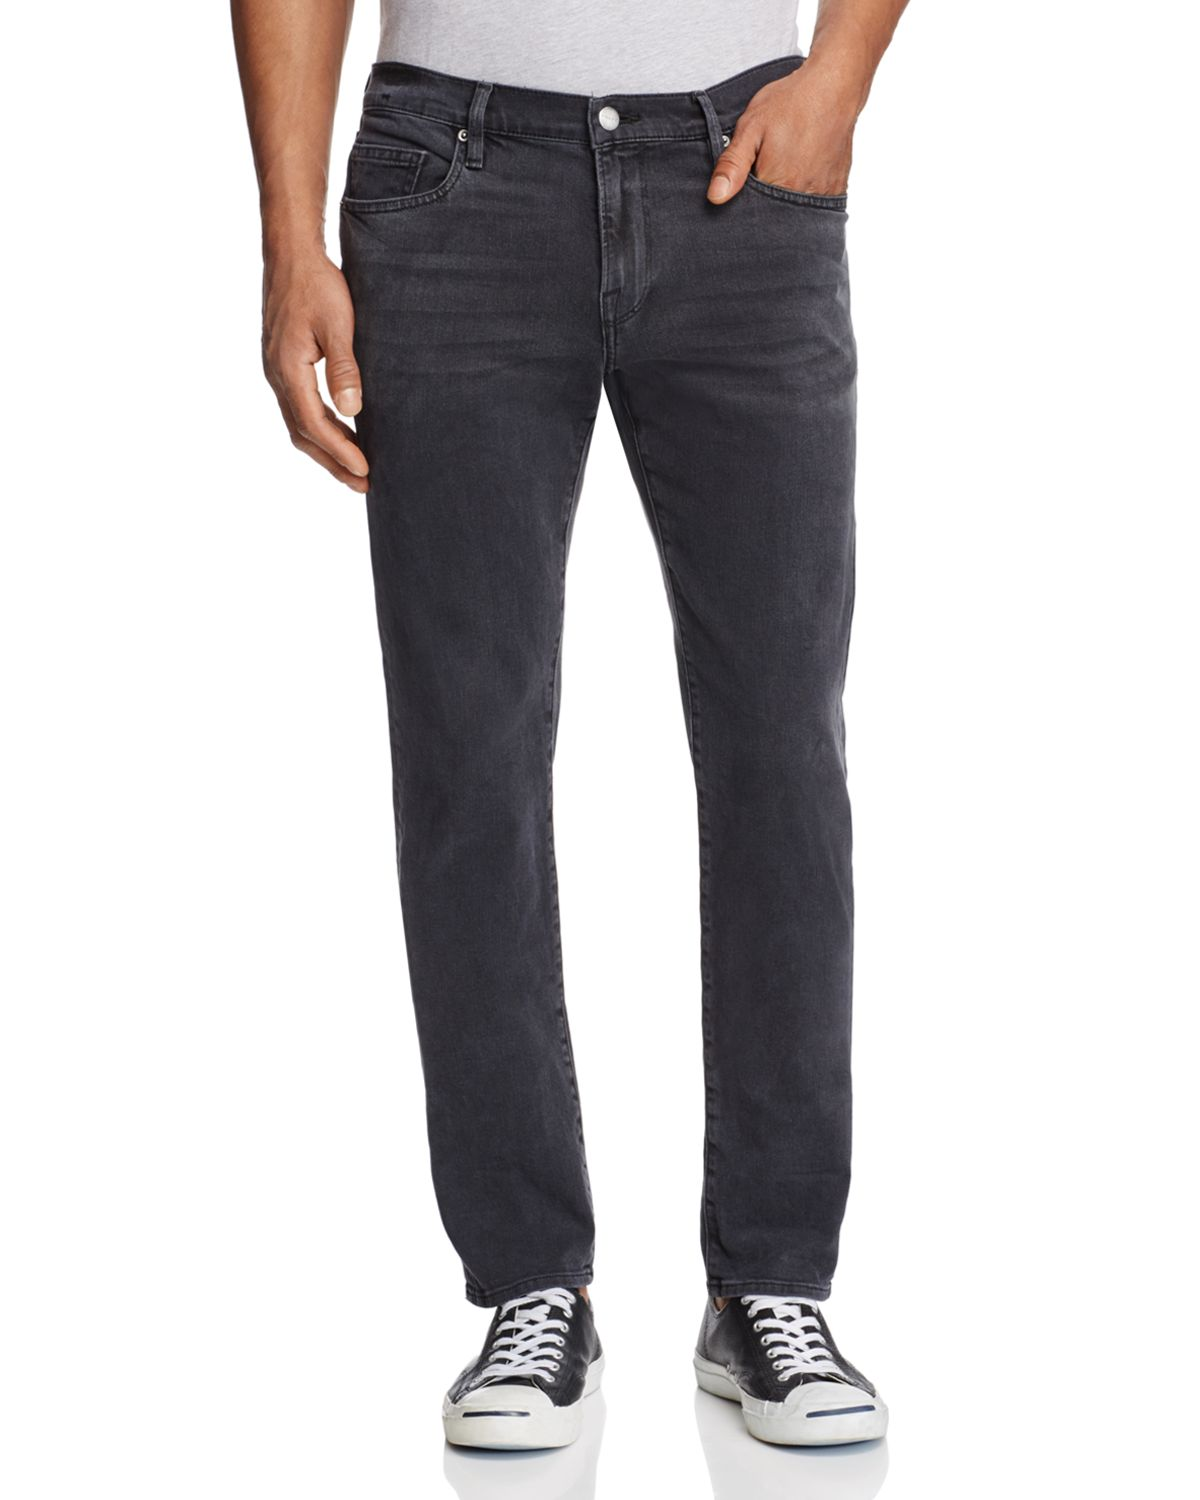 L'homme Skinny Fit Jeans In Fade To Grey by Frame